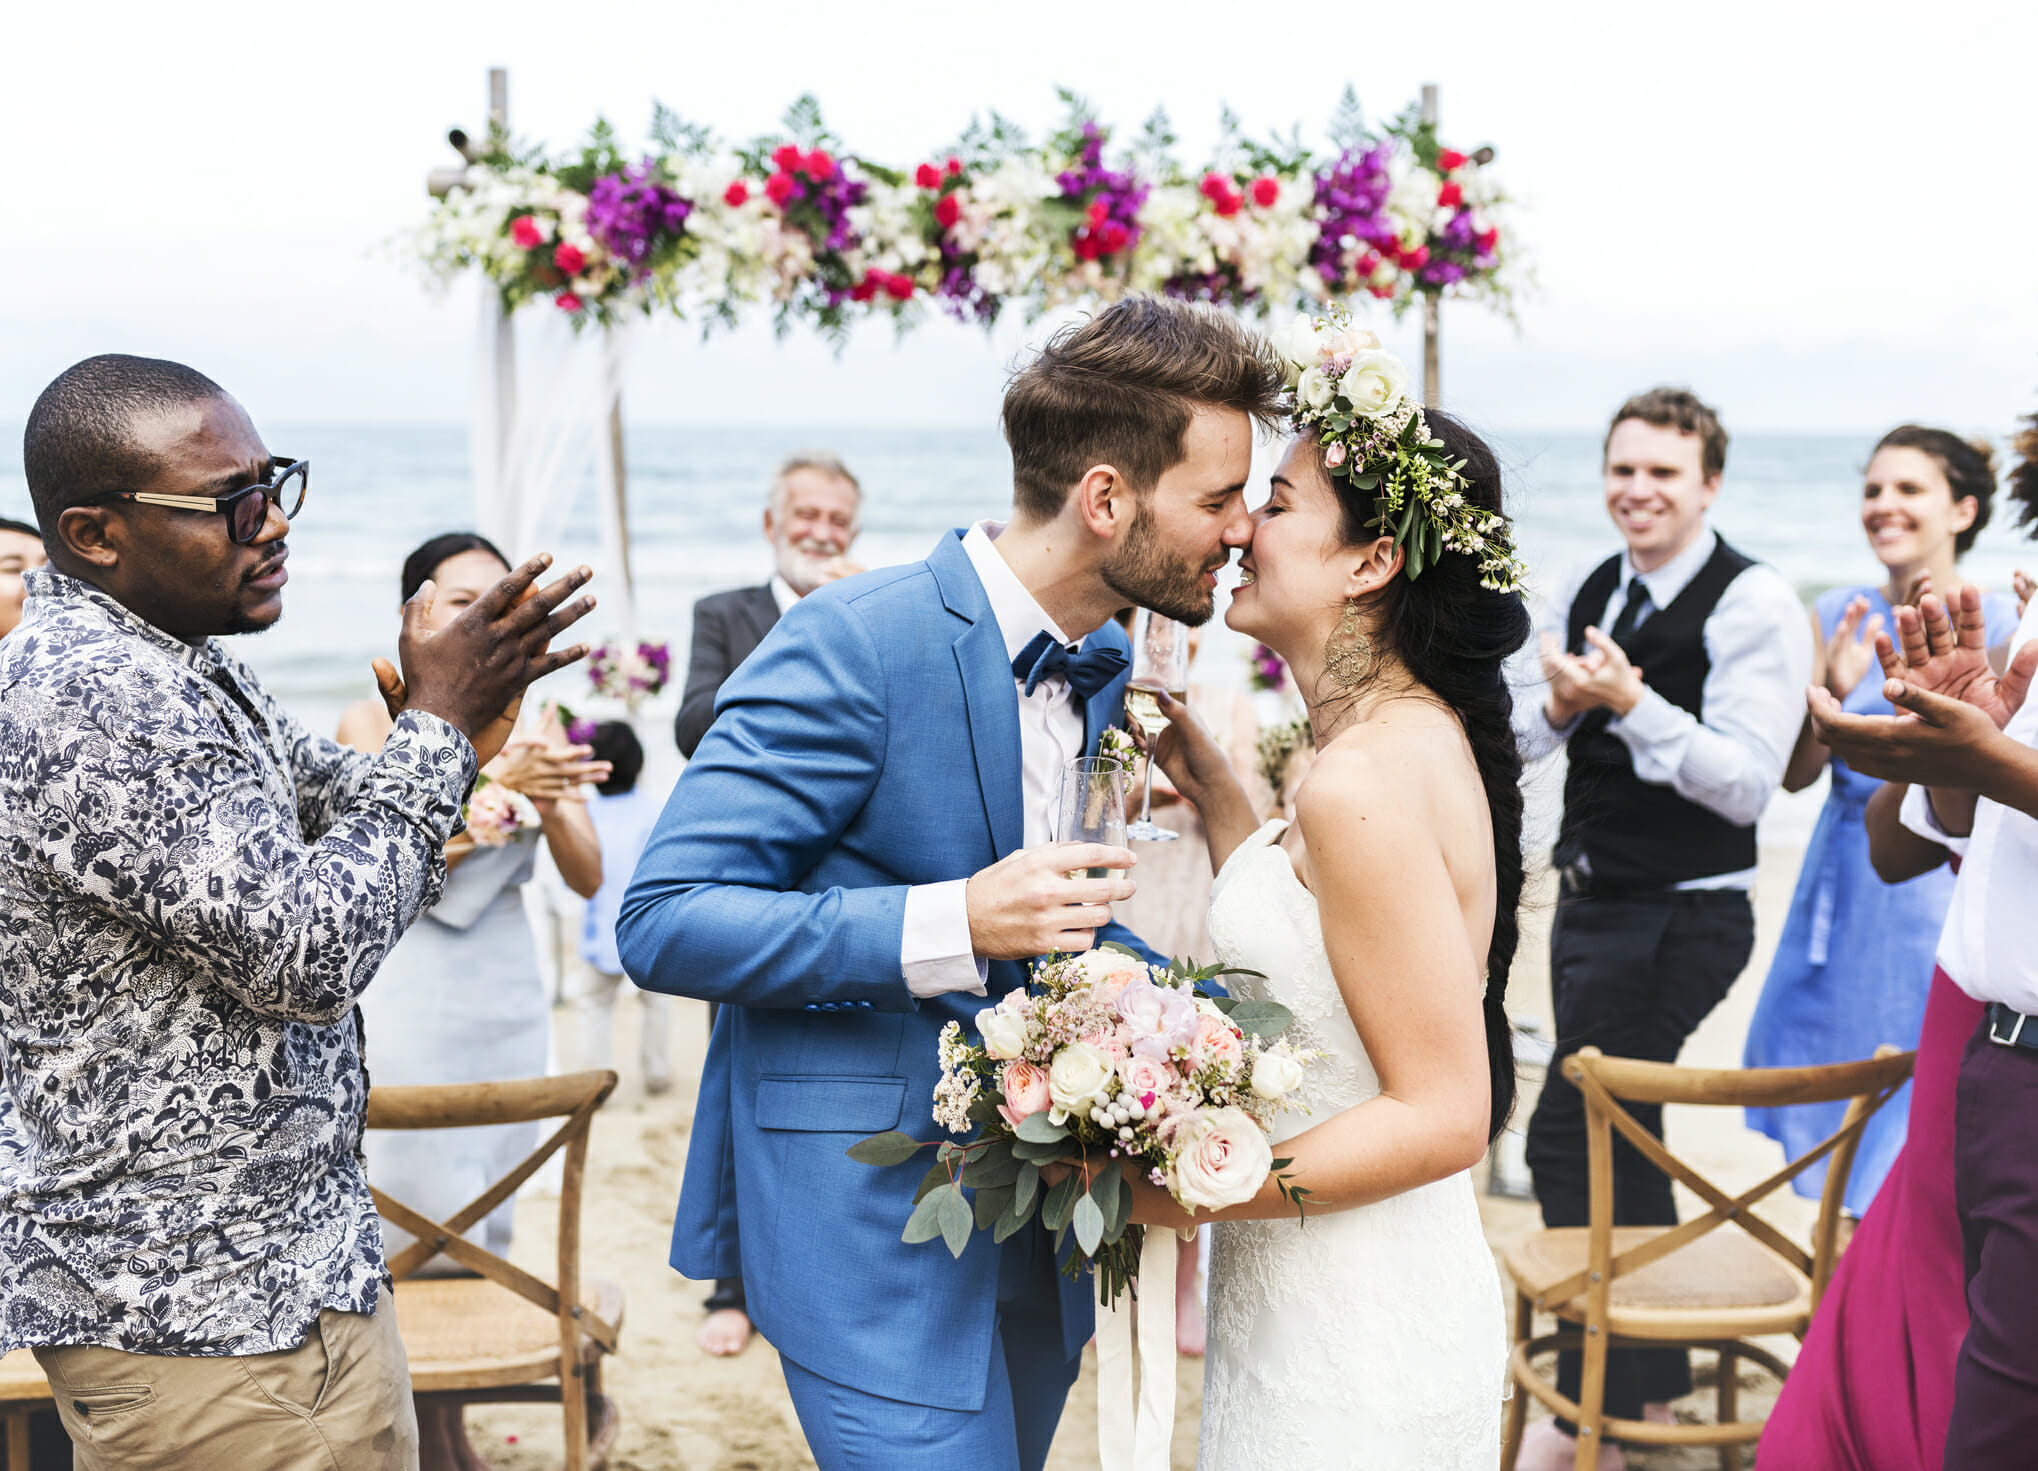 The Destination Wedding: Is It All It's Cracked up to Be?